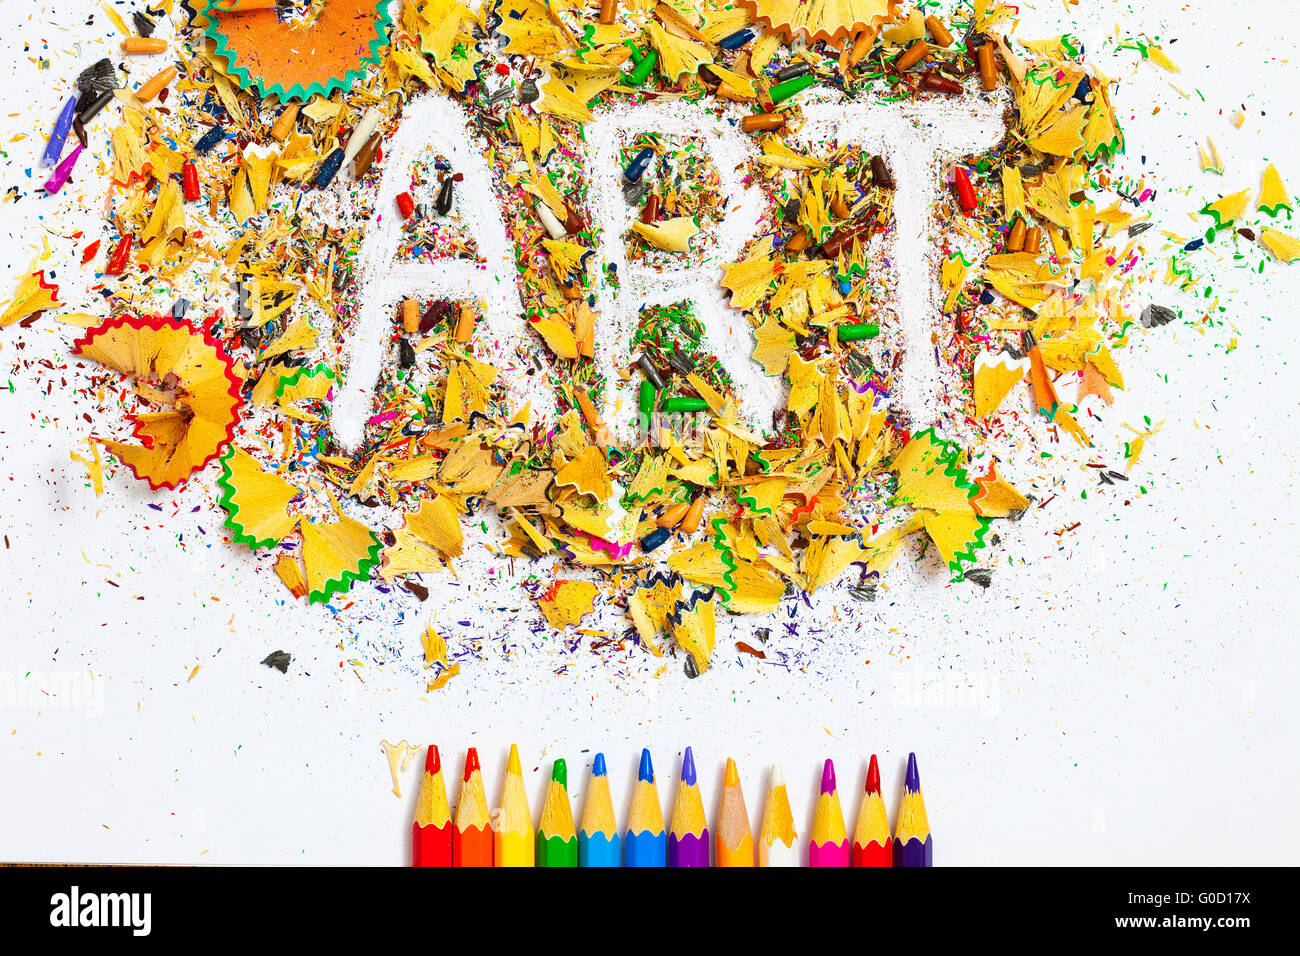 Word Art Over A Shavings Of Pencils For Drawing Stock Photo